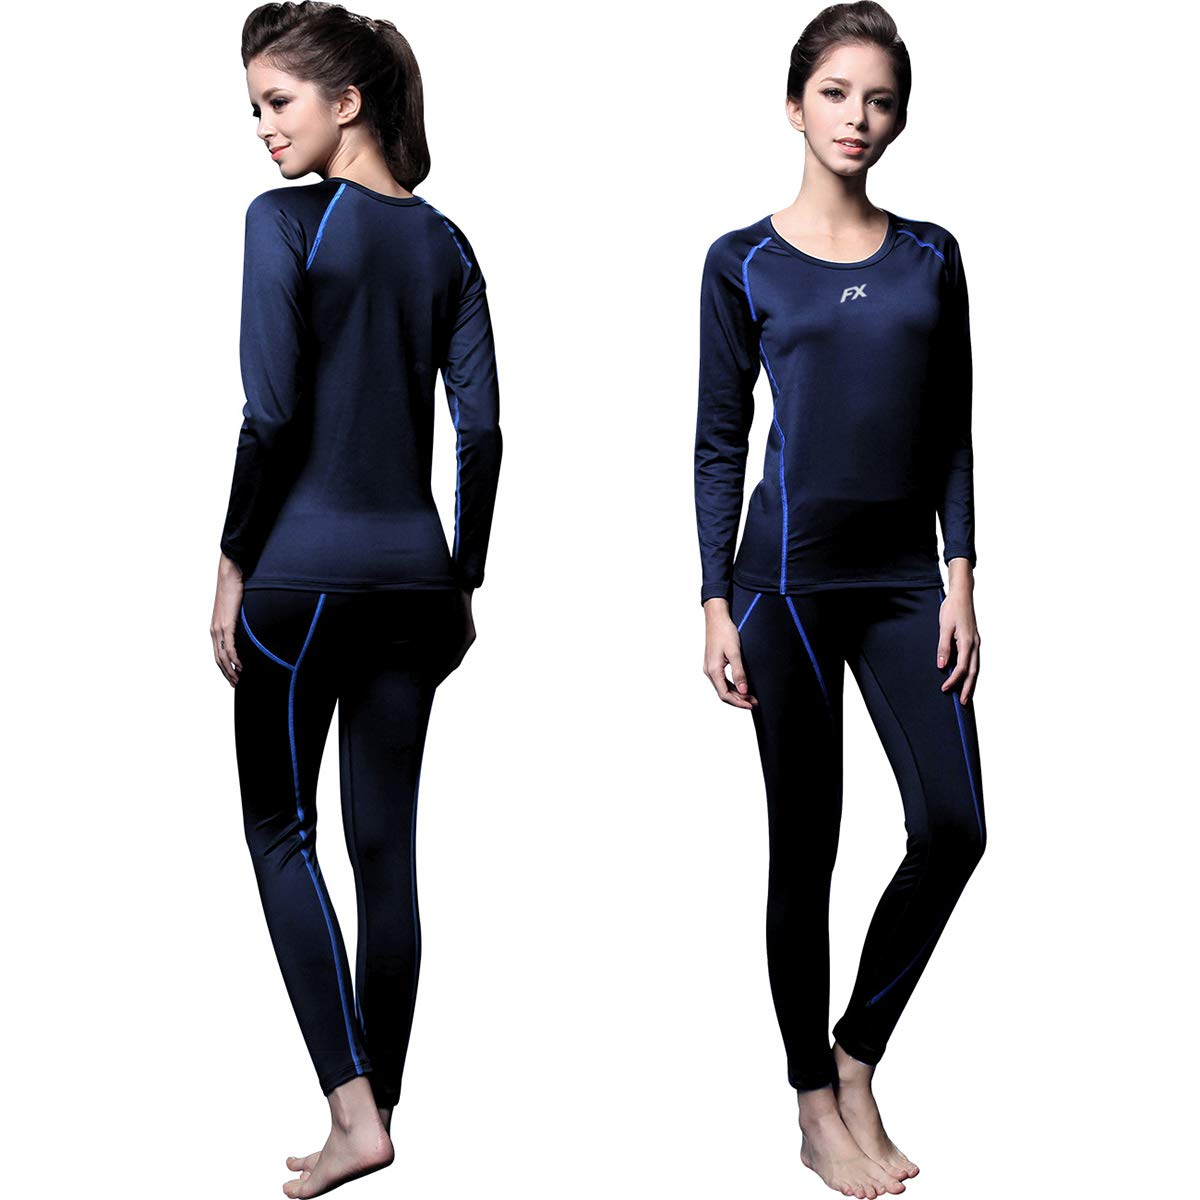 FITEXTREME Womens MAXHEAT Fleece Long Johns Thermal Underwear Set Navy S